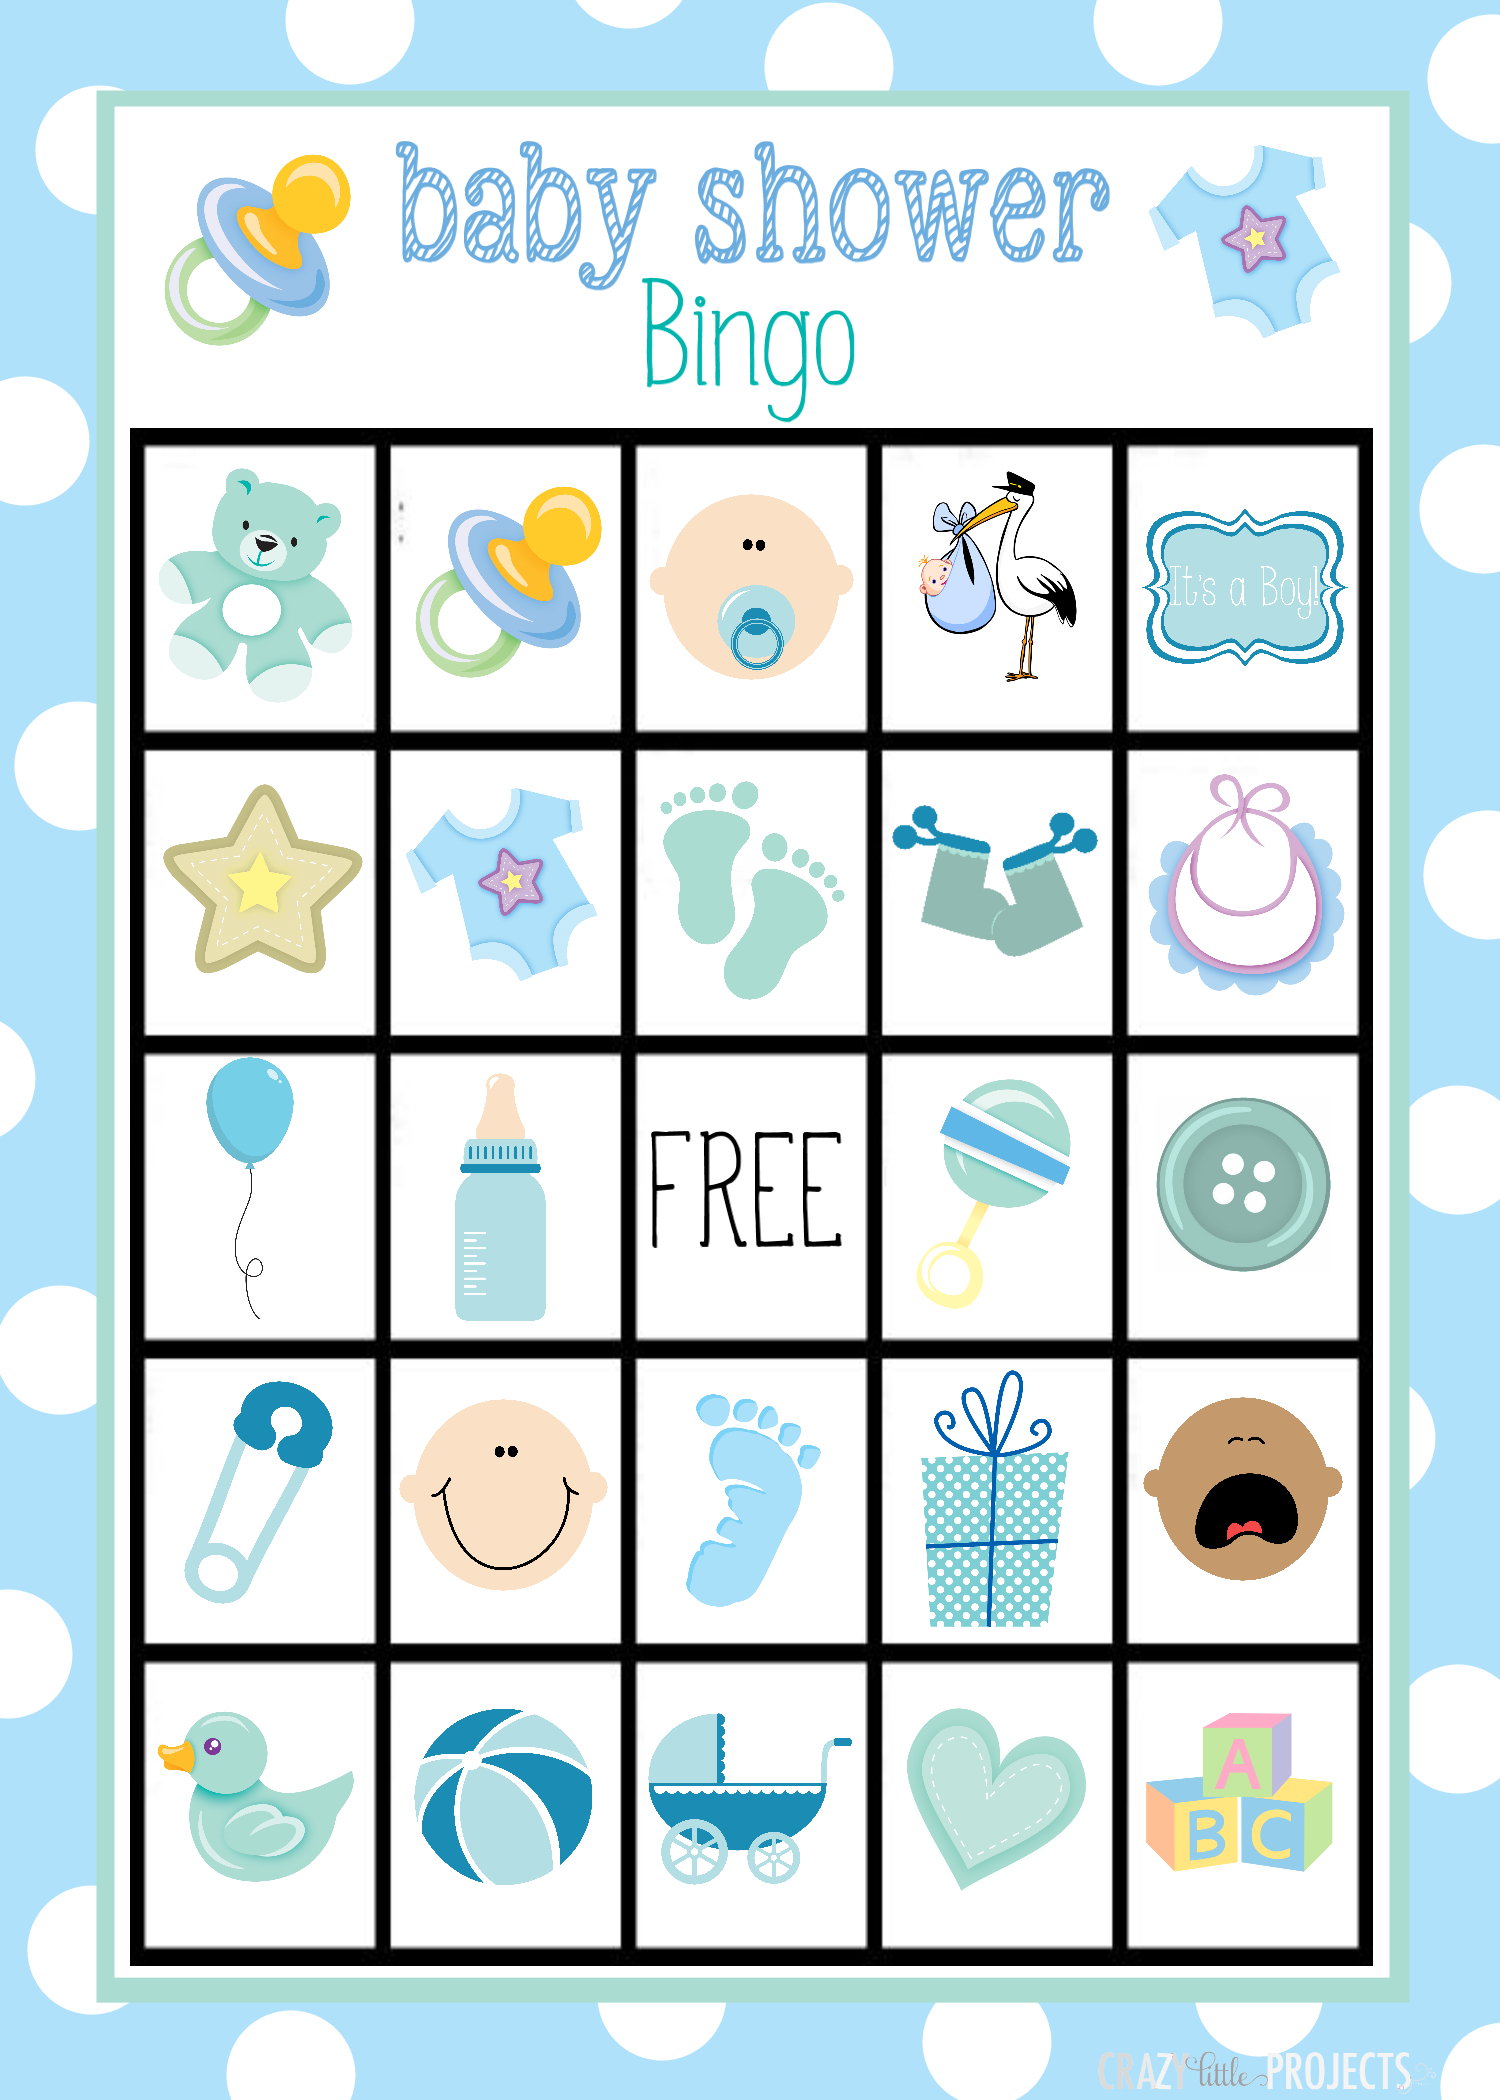 Baby Shower Bingo Cards - Free Printable Baby Shower Bingo For 50 People